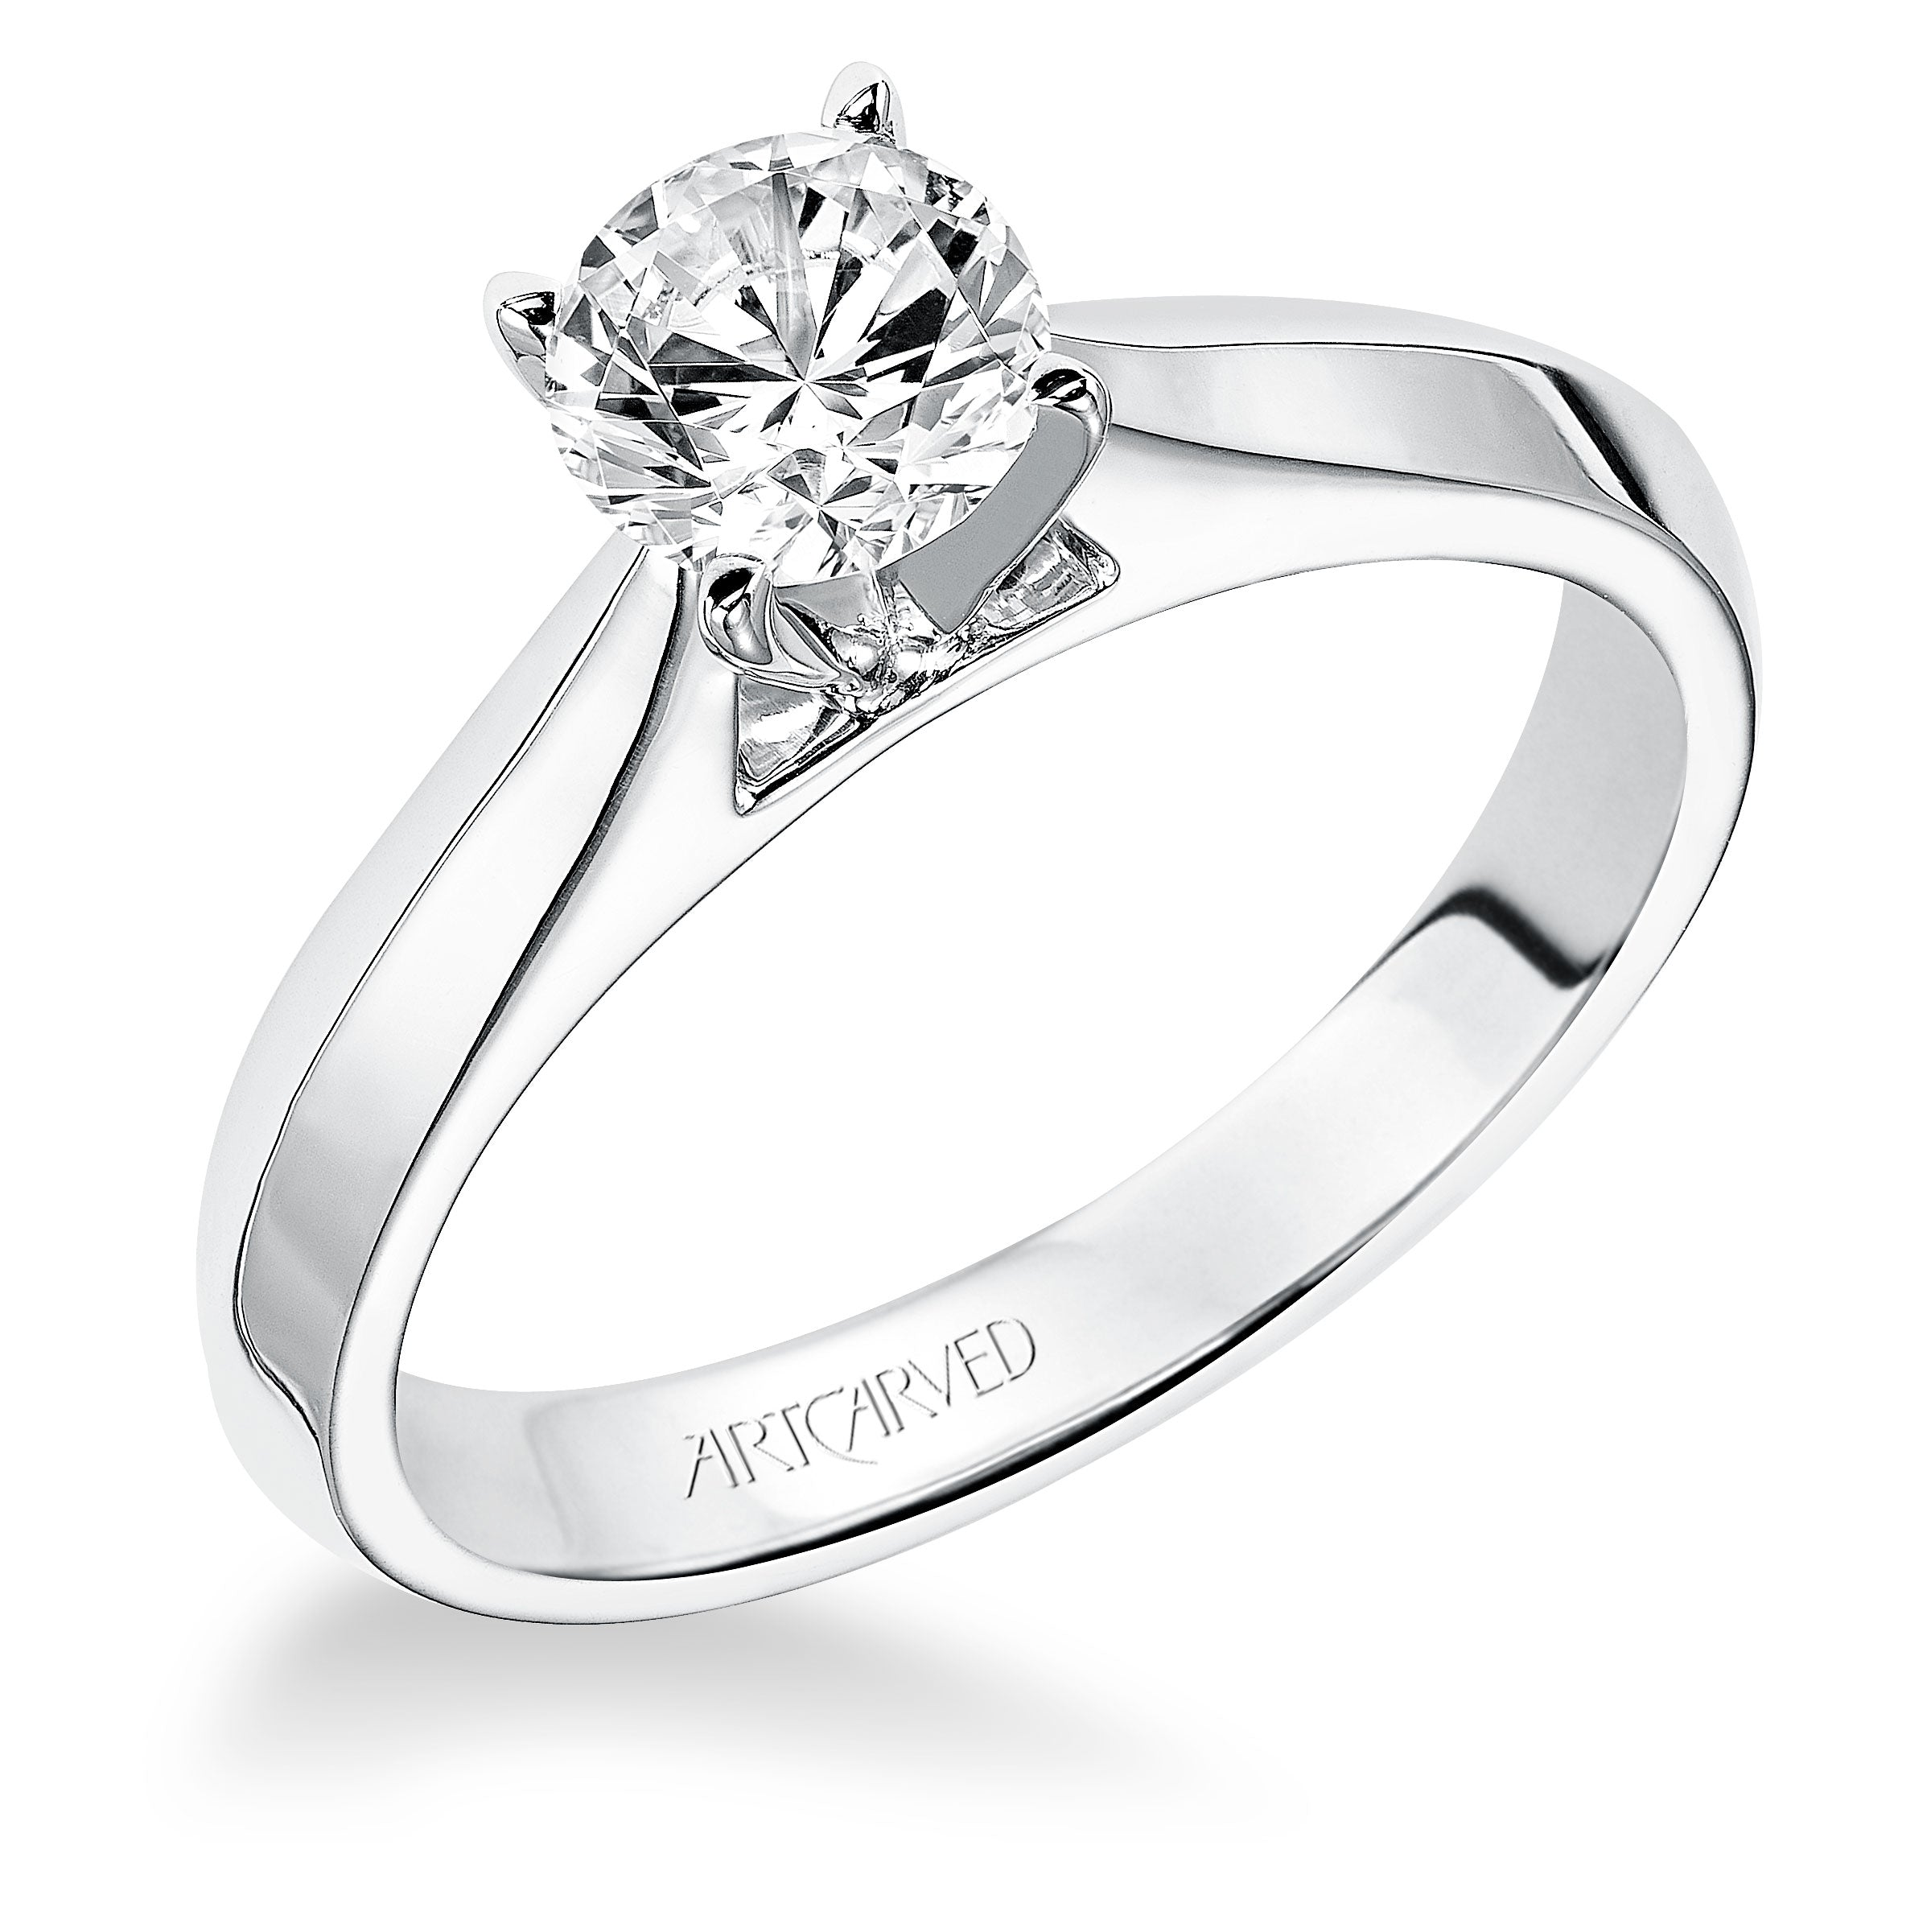 be work point bridal co its select rings you engagementrings focal solitaire truly wedding band an cut reflect stone eshop allow ring impeccable the then magic banners settings and engagement to gabriel round of